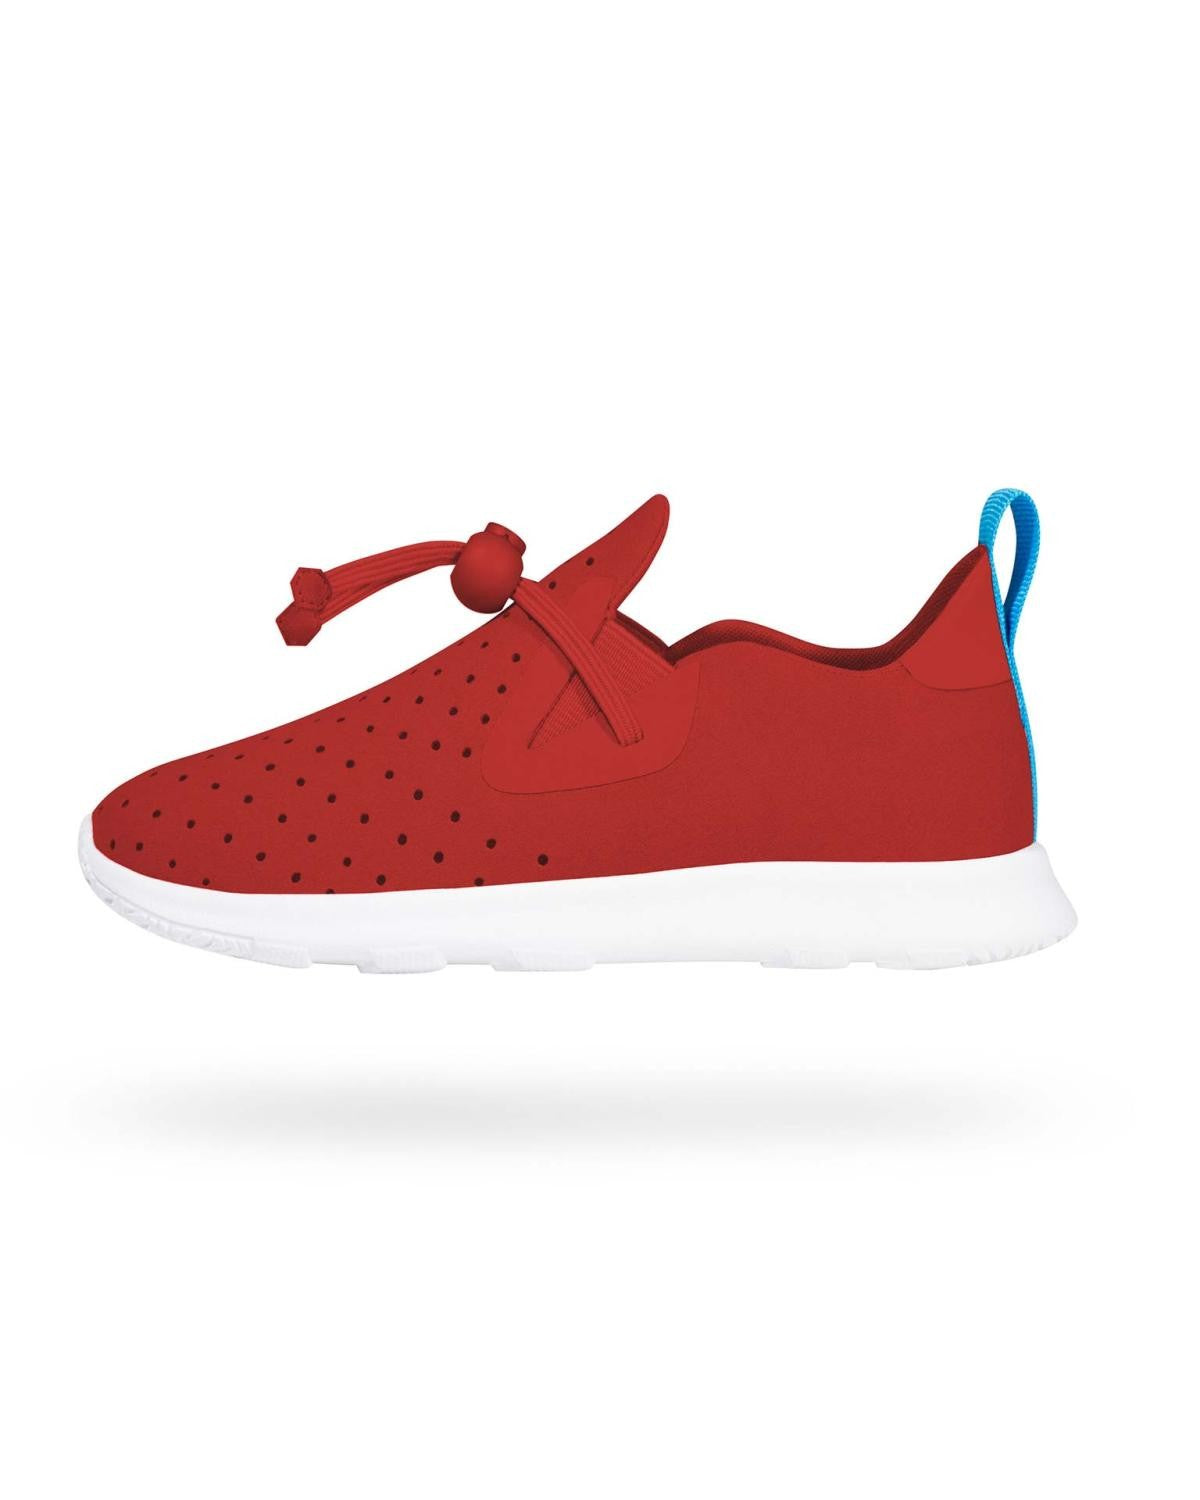 Native Shoes Apollo Mocc torch red